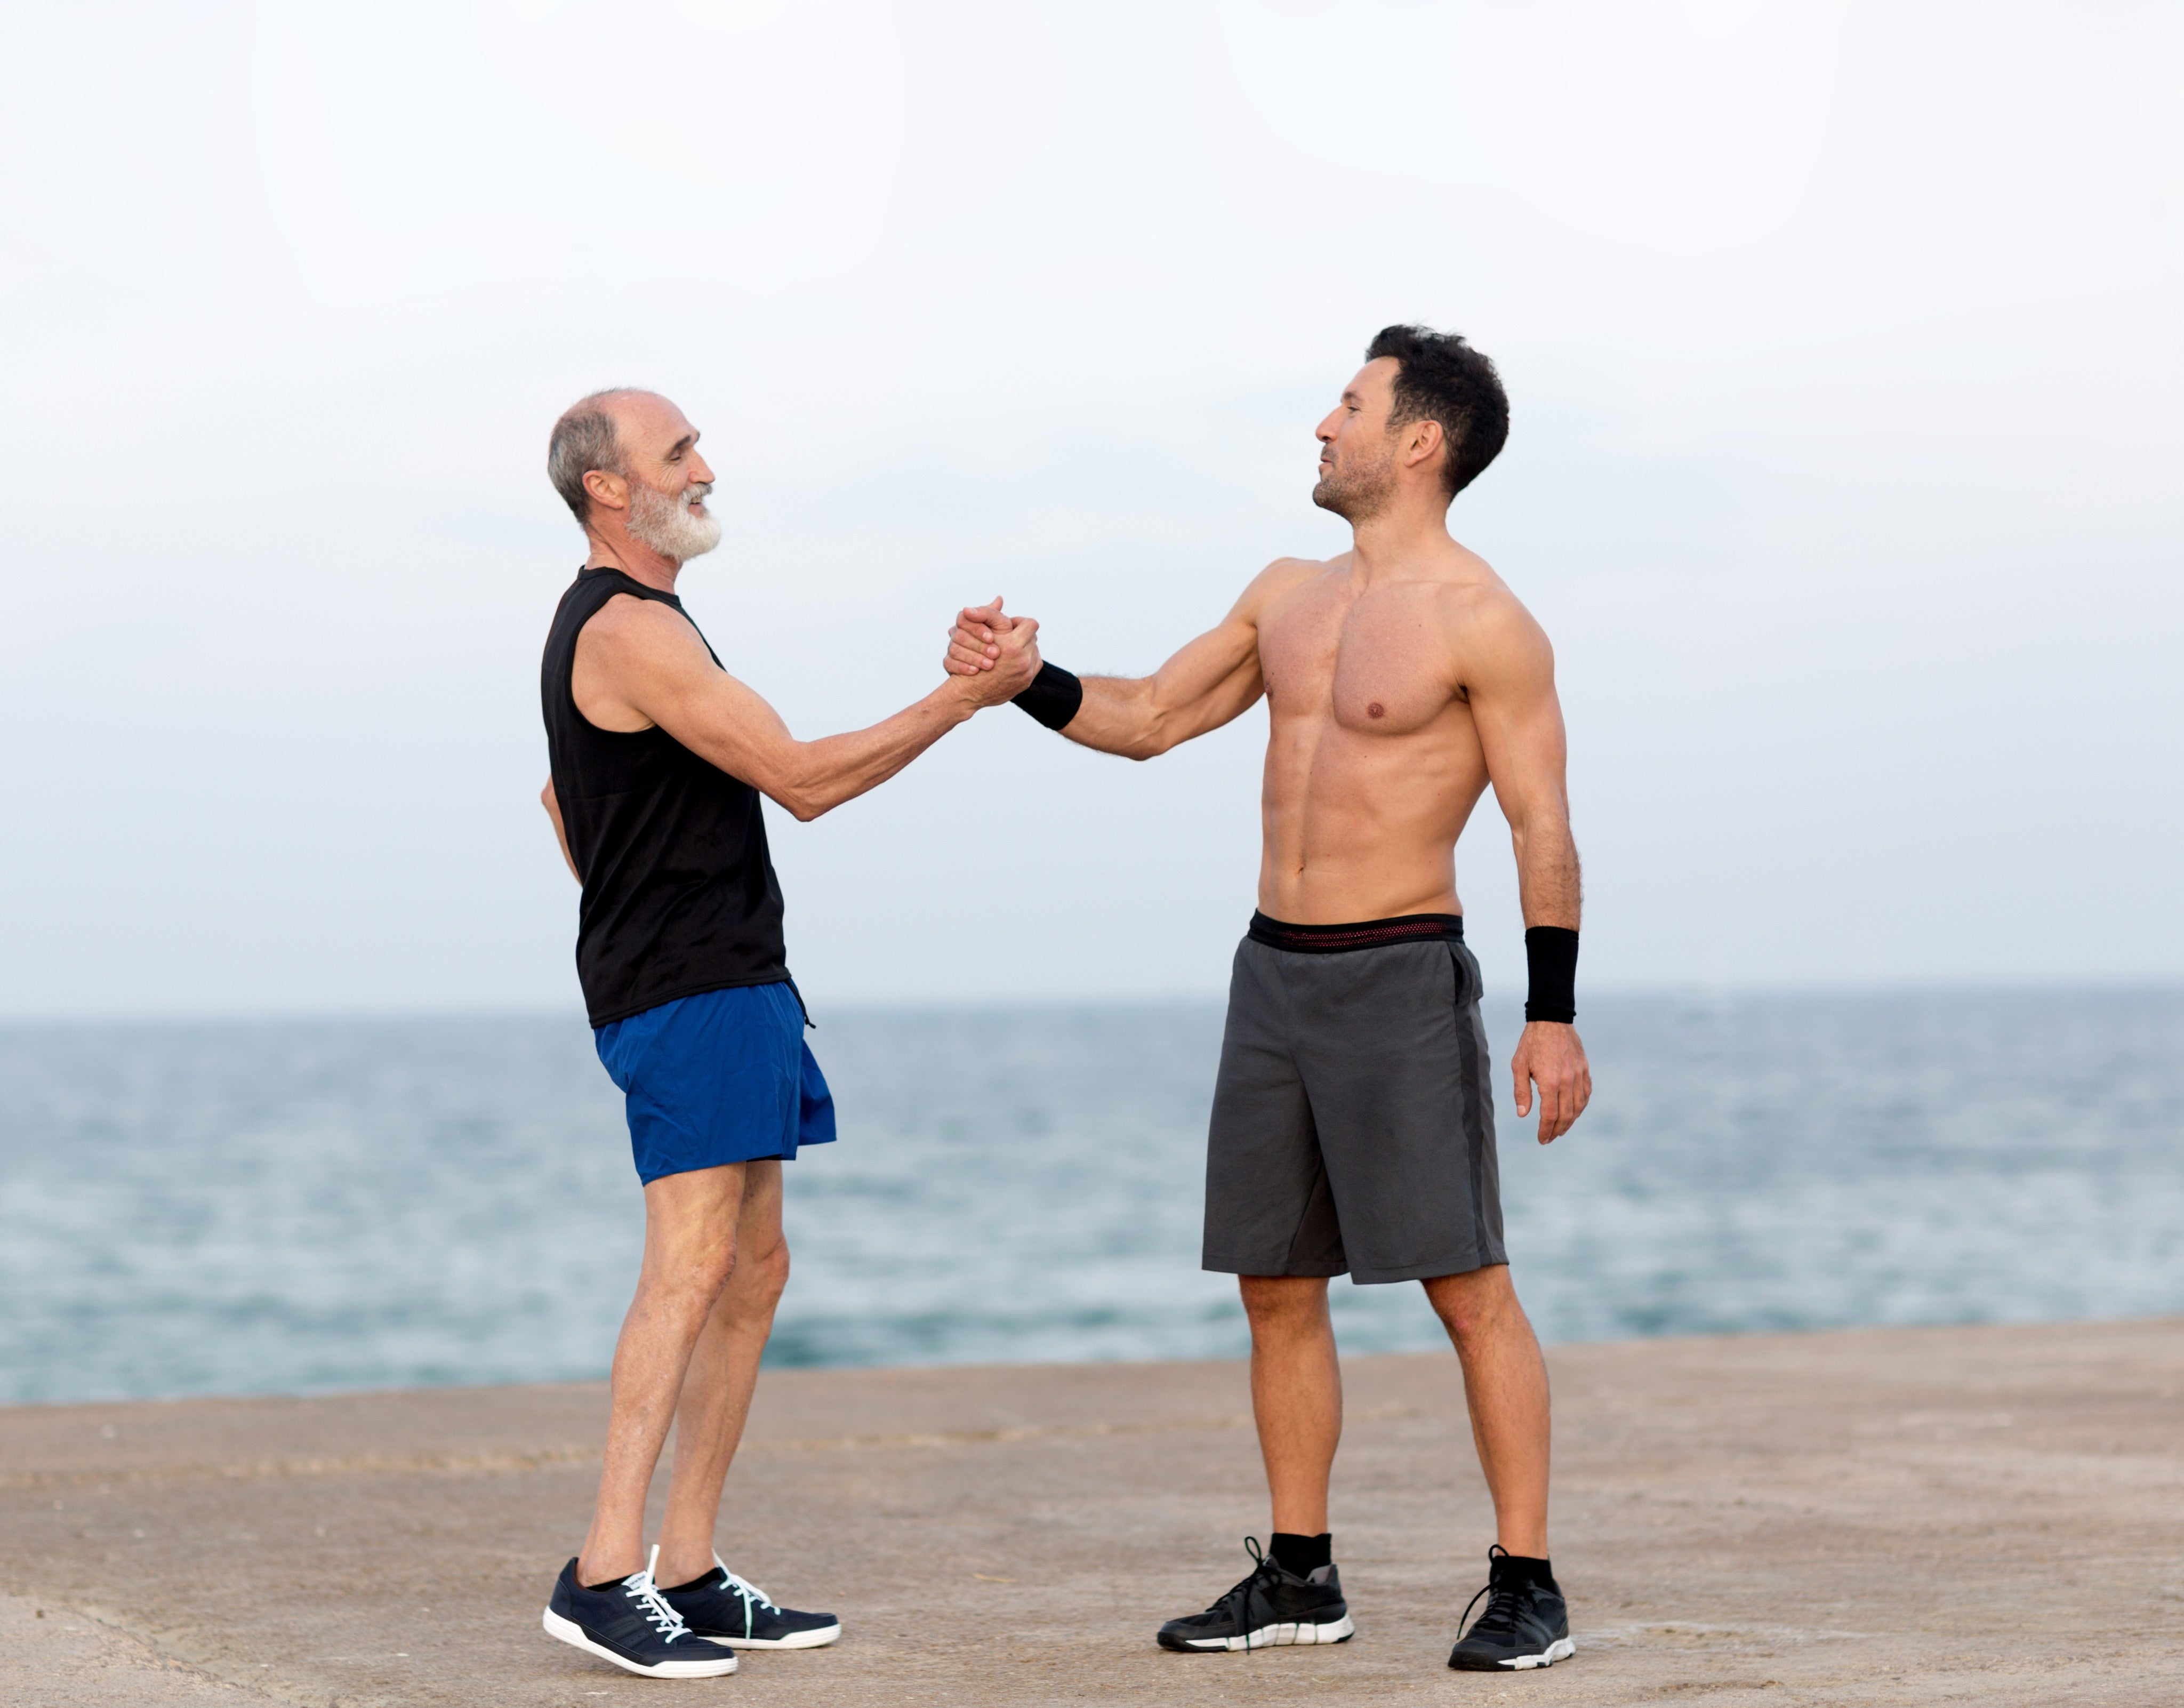 Father and son grasping hands on beach